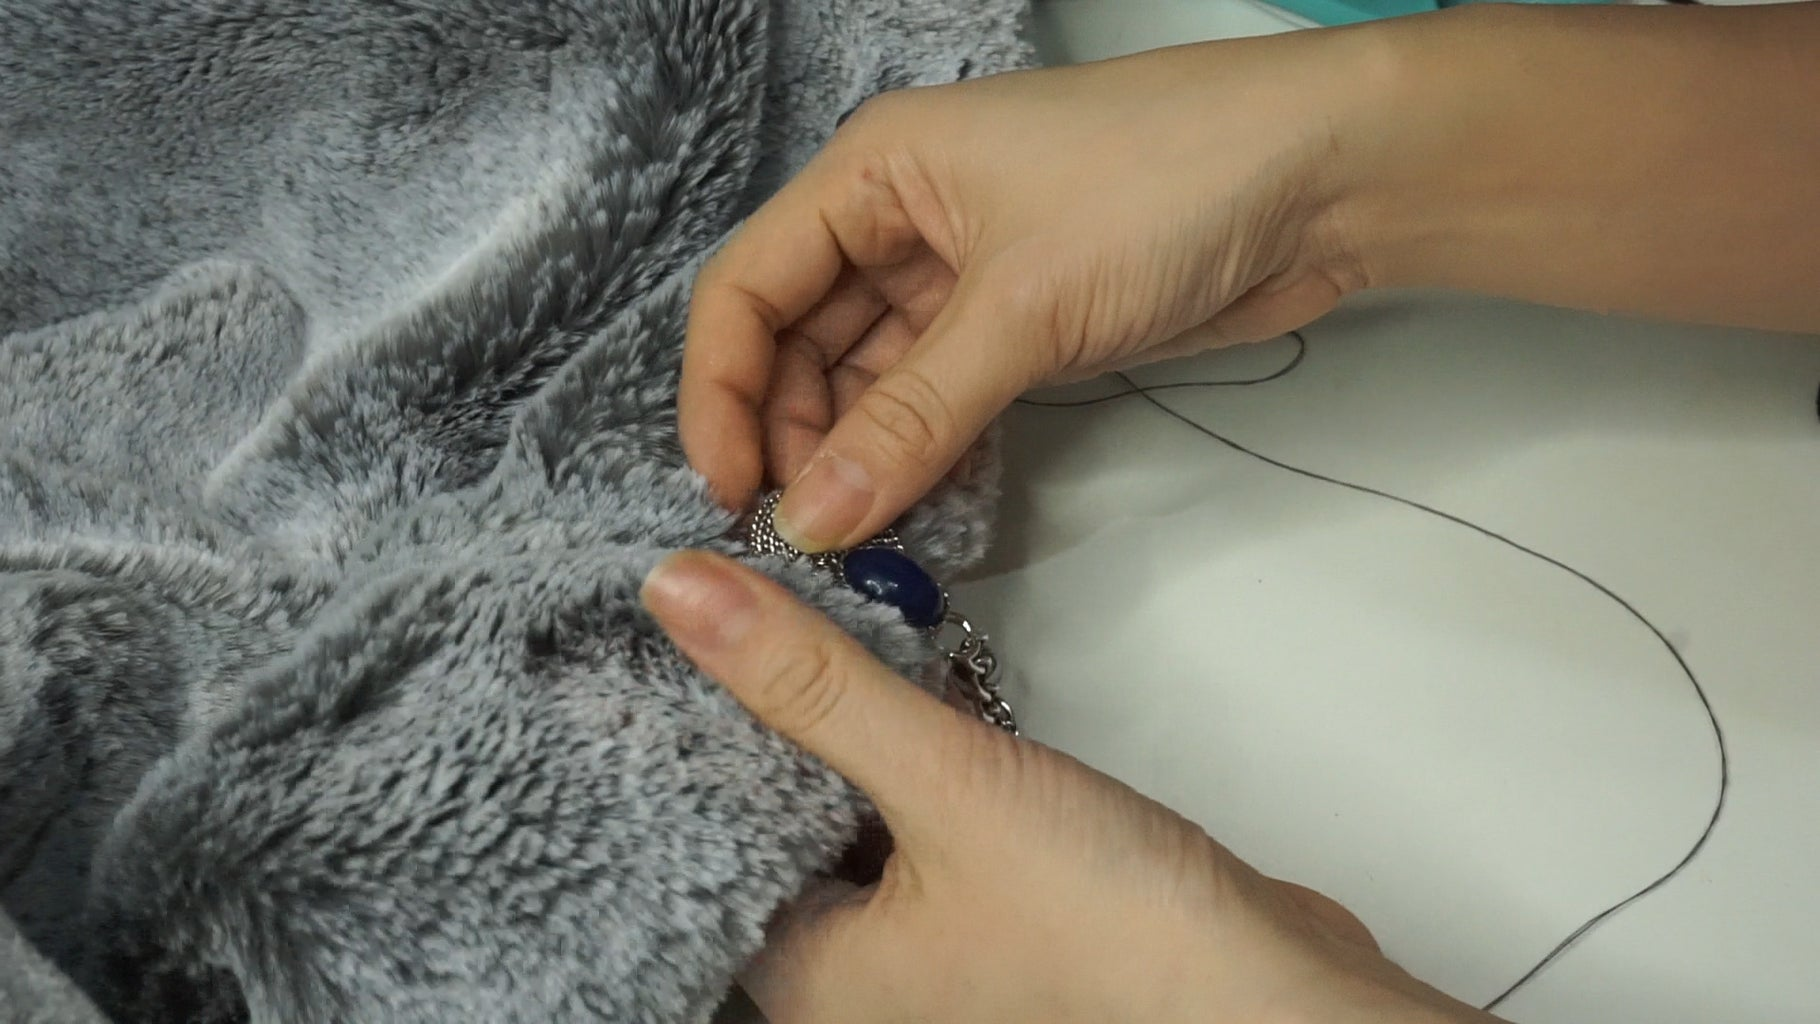 OPTIONAL - Step 7: Add Buttons or Embellishments